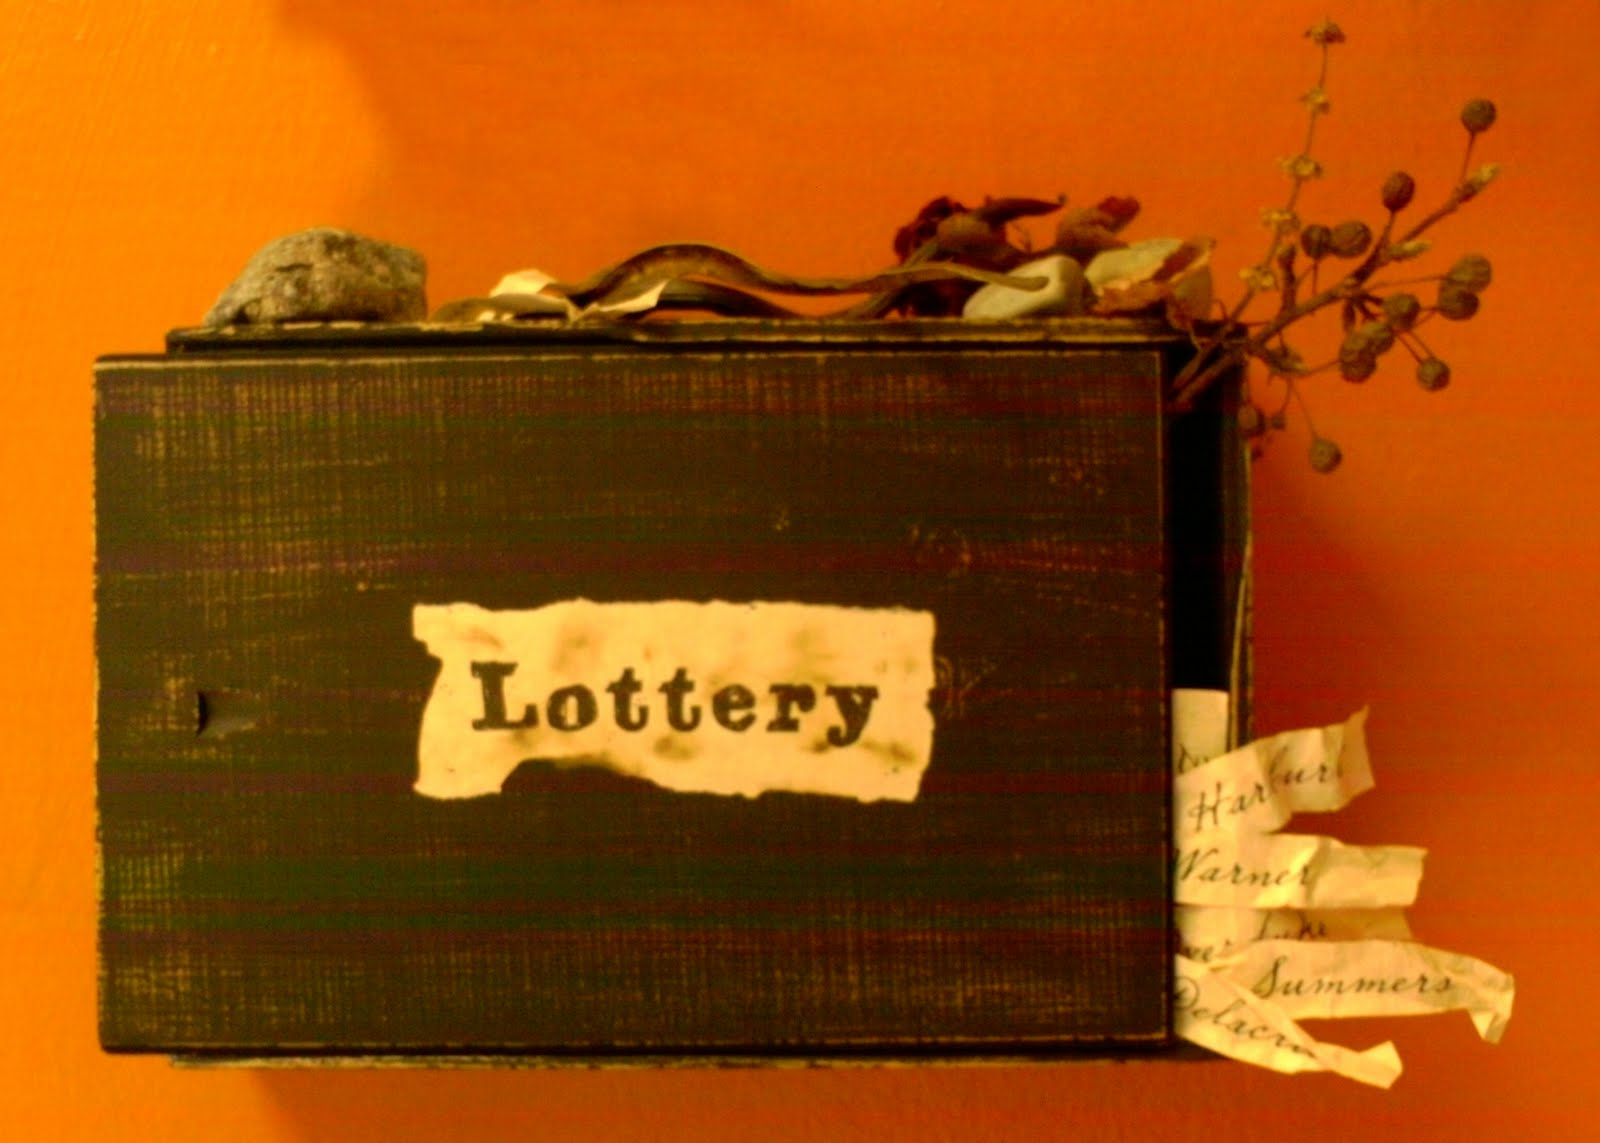 Essay On The Lottery By Shirley Jackson Lottery  Essay On The Lottery By Shirley Jackson